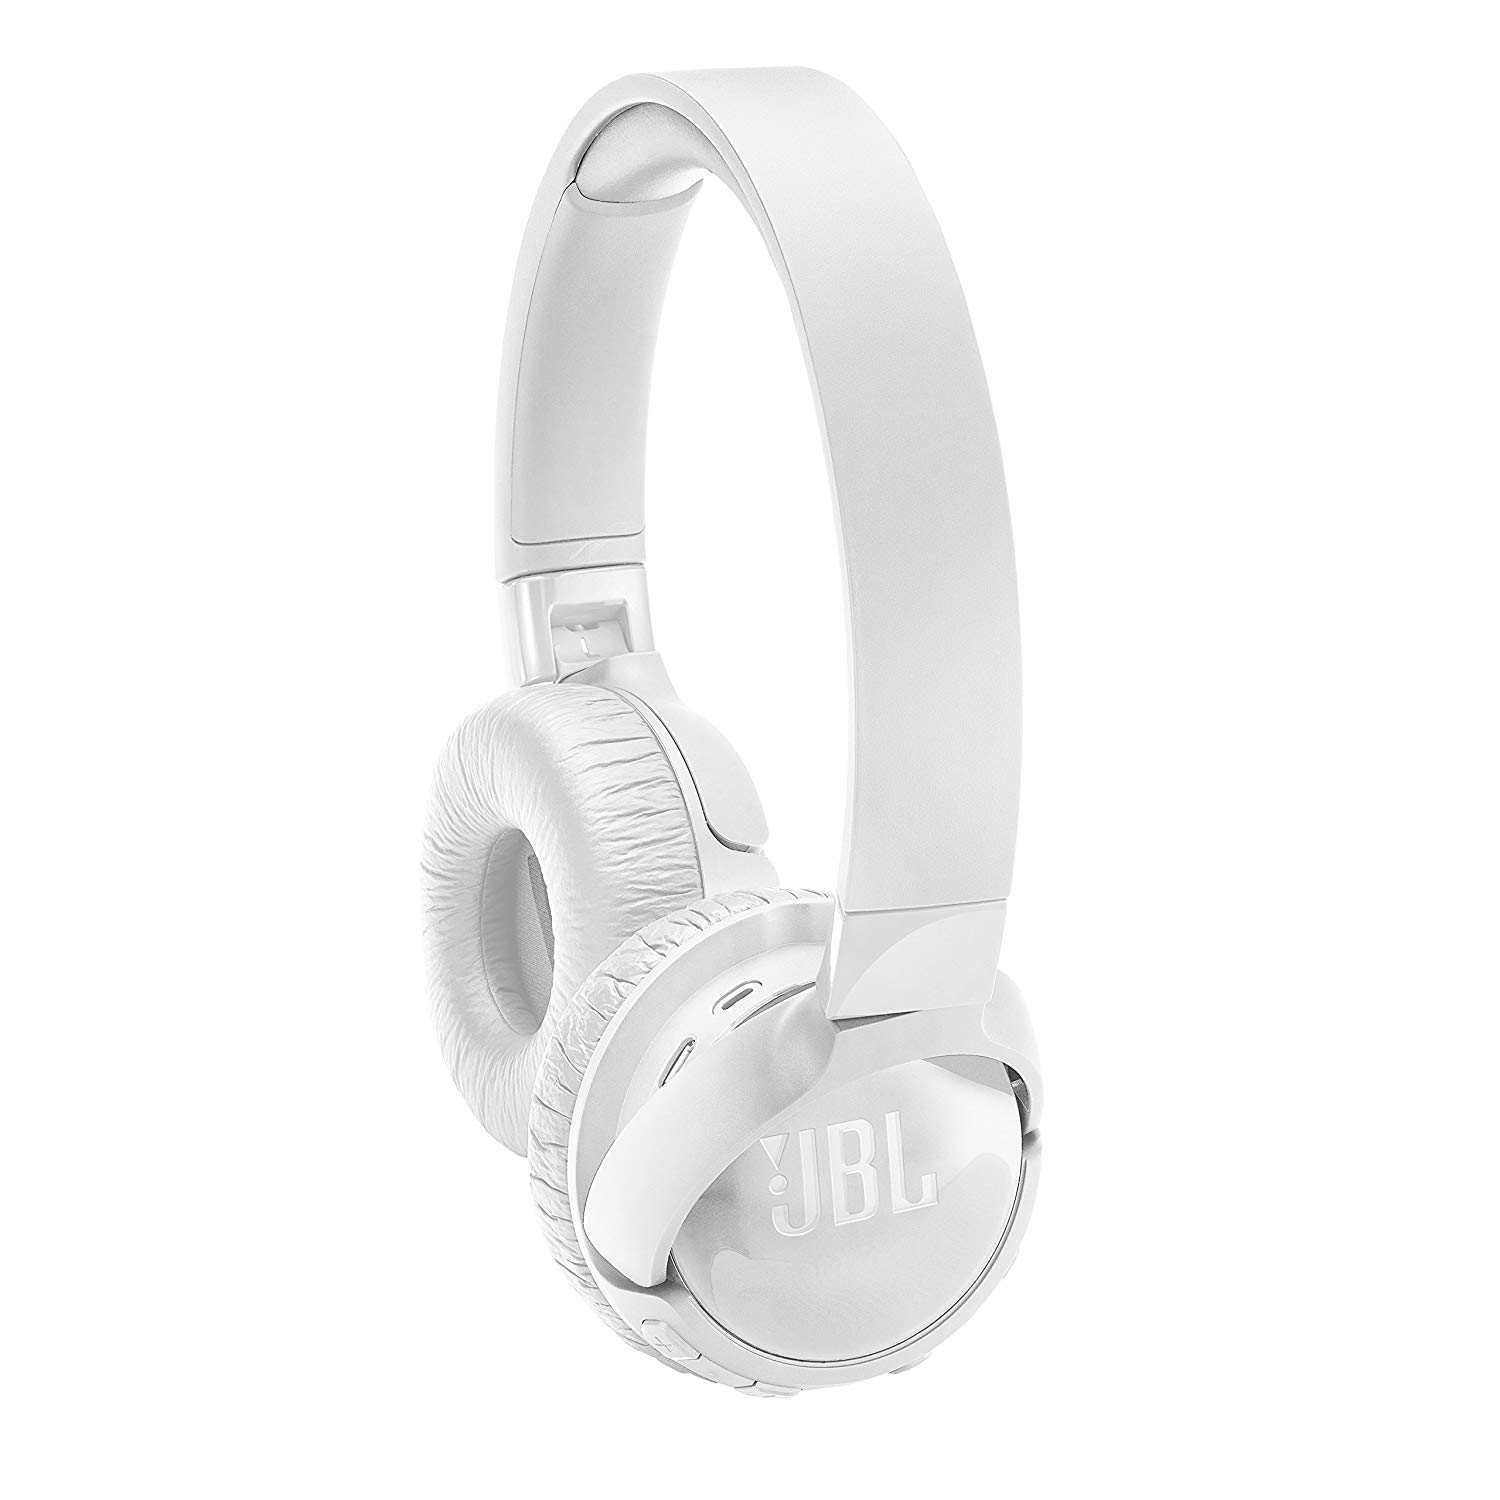 84bcf3c845f Buy Online JBL Tune 600 BTNC On-Ear Wireless Bluetooth Noise Canceling  Headphones (White) at cheap Price in India   24eshop